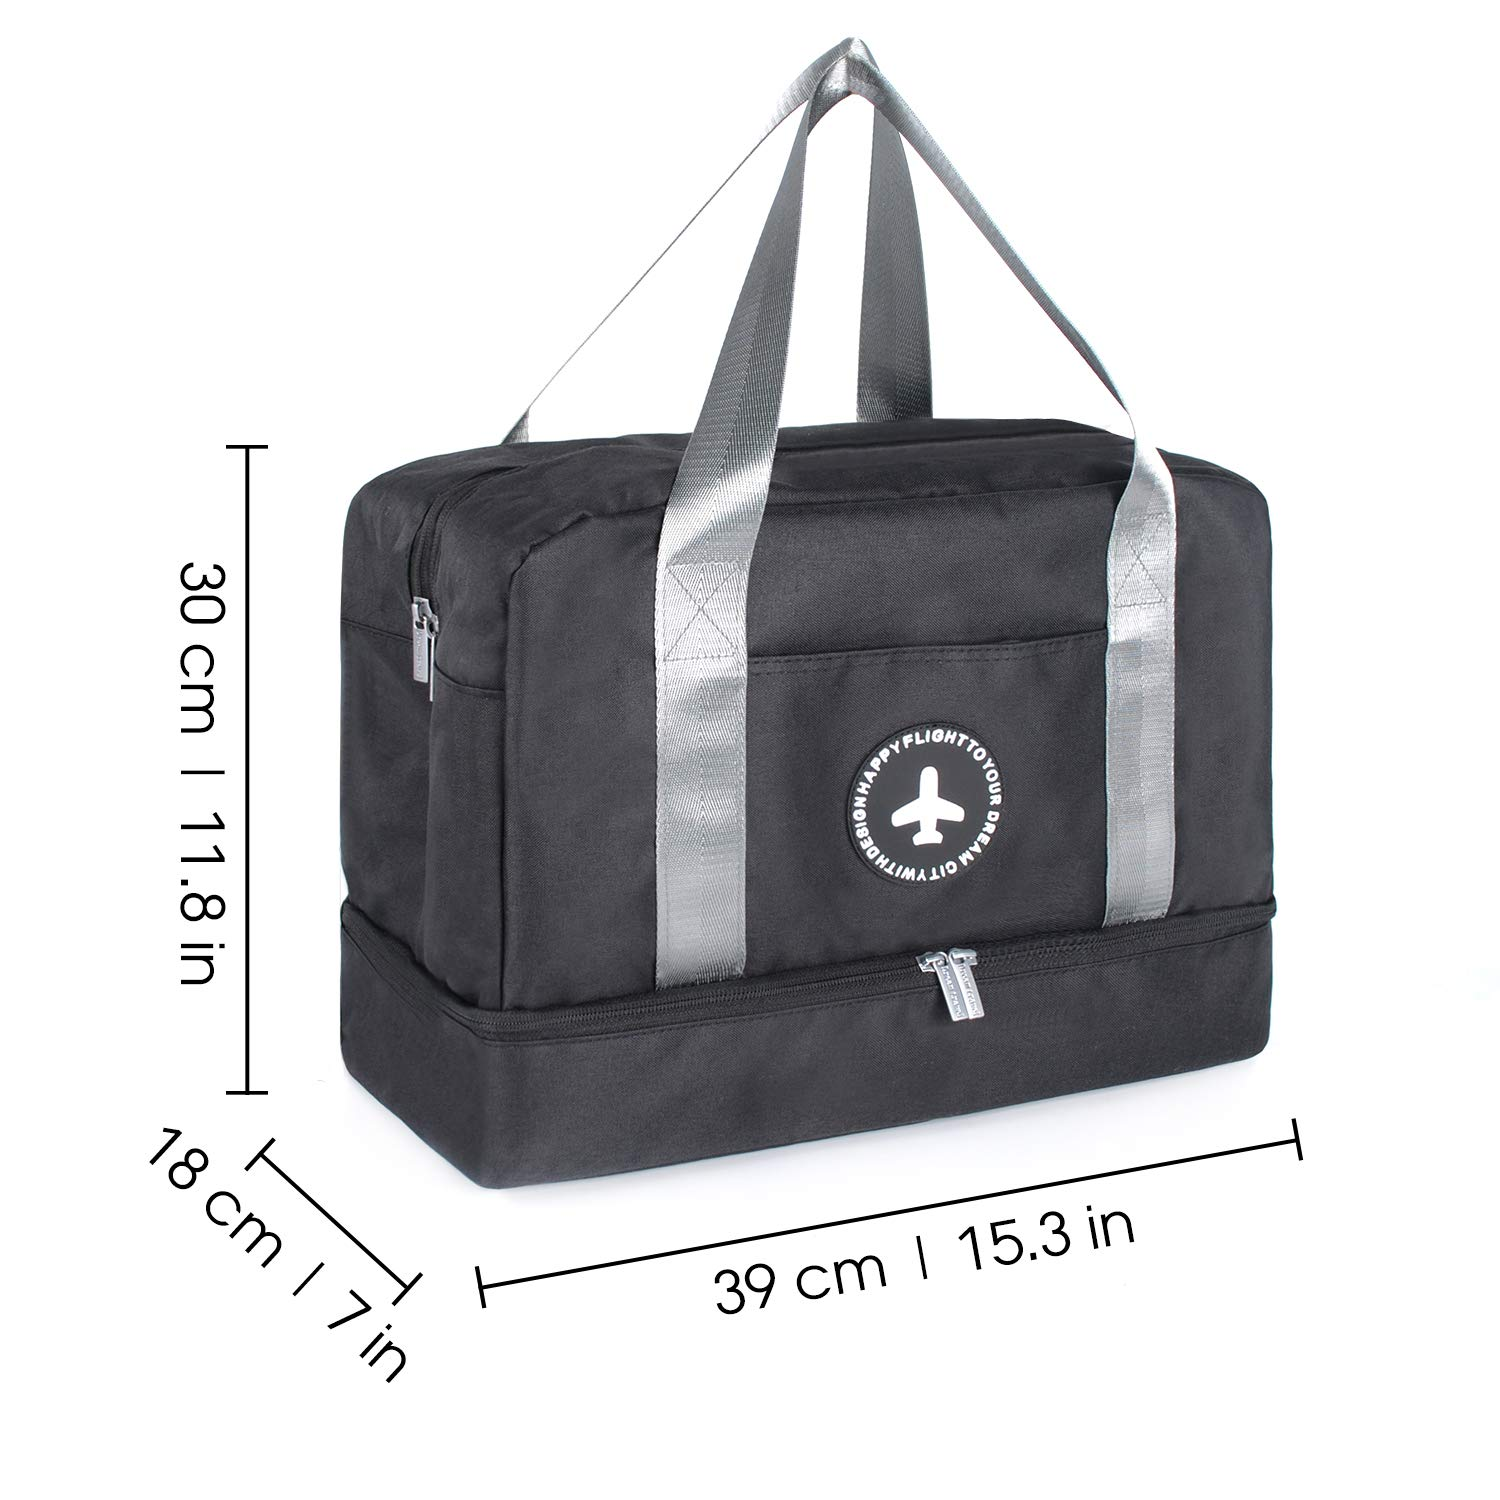 Duffle Bag Gym Tote Swim Bag with Wet Pocket and Shoes Compartment